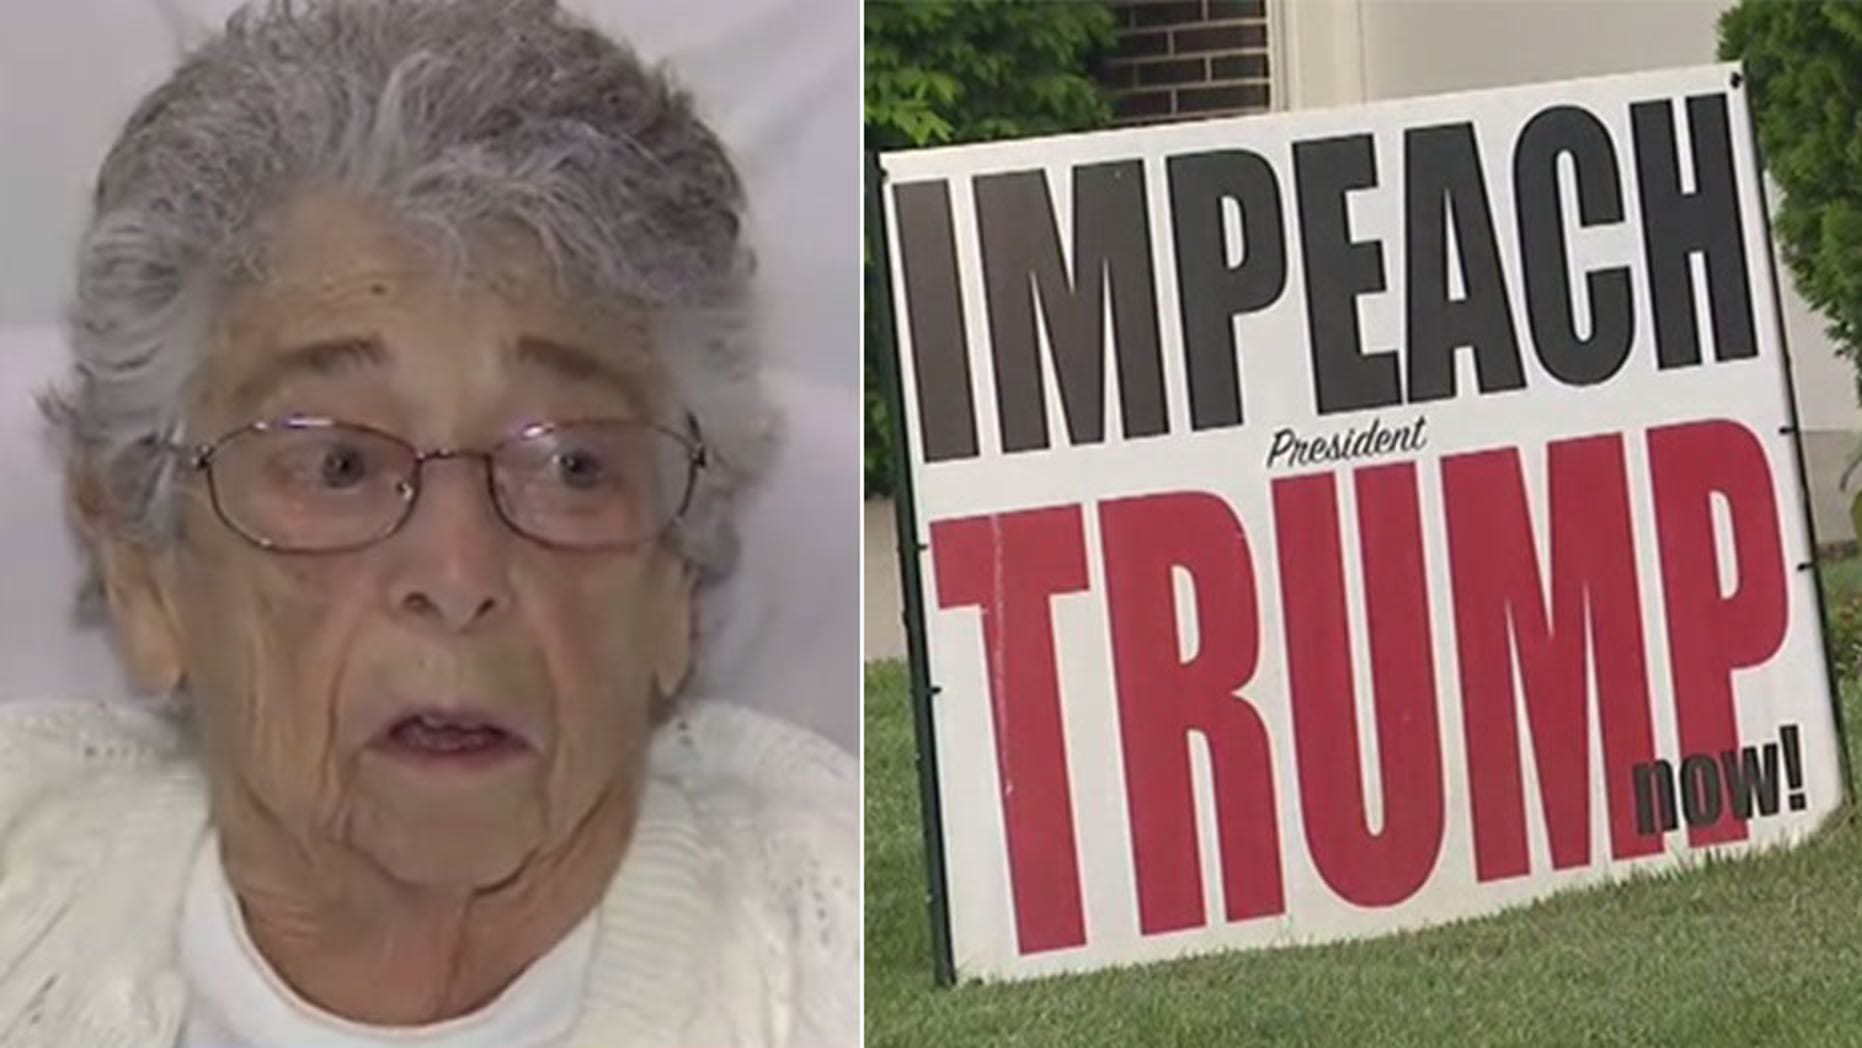 Myra Becker, a 94-year-old resident of Elgin, Ill., says the city has suddenly taken issue with a giant anti-Trump sign that she has had up on her front lawn since February.